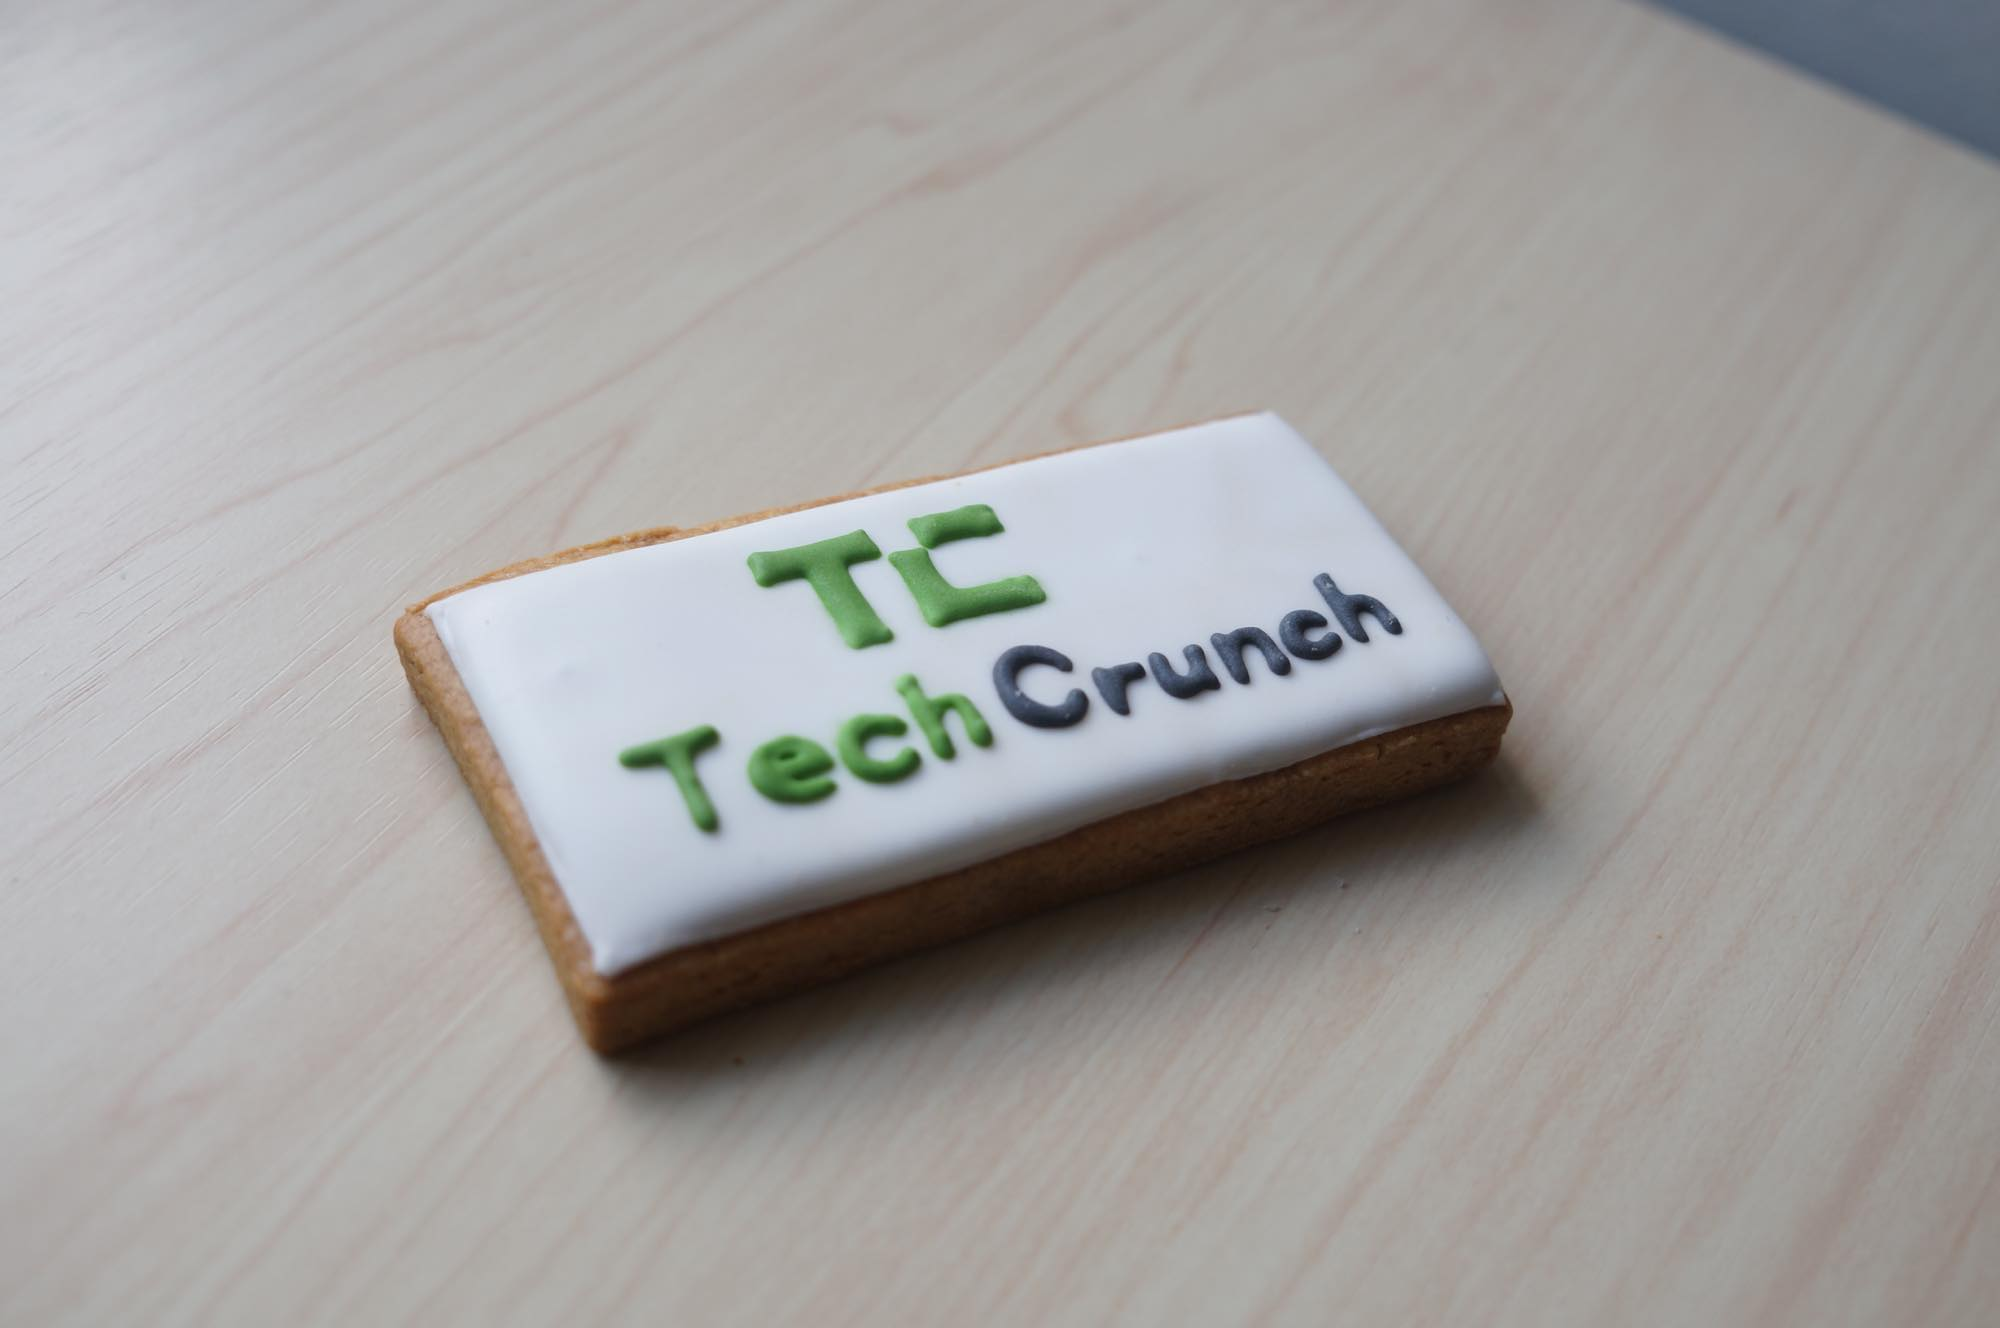 TechCrunch-cookie1